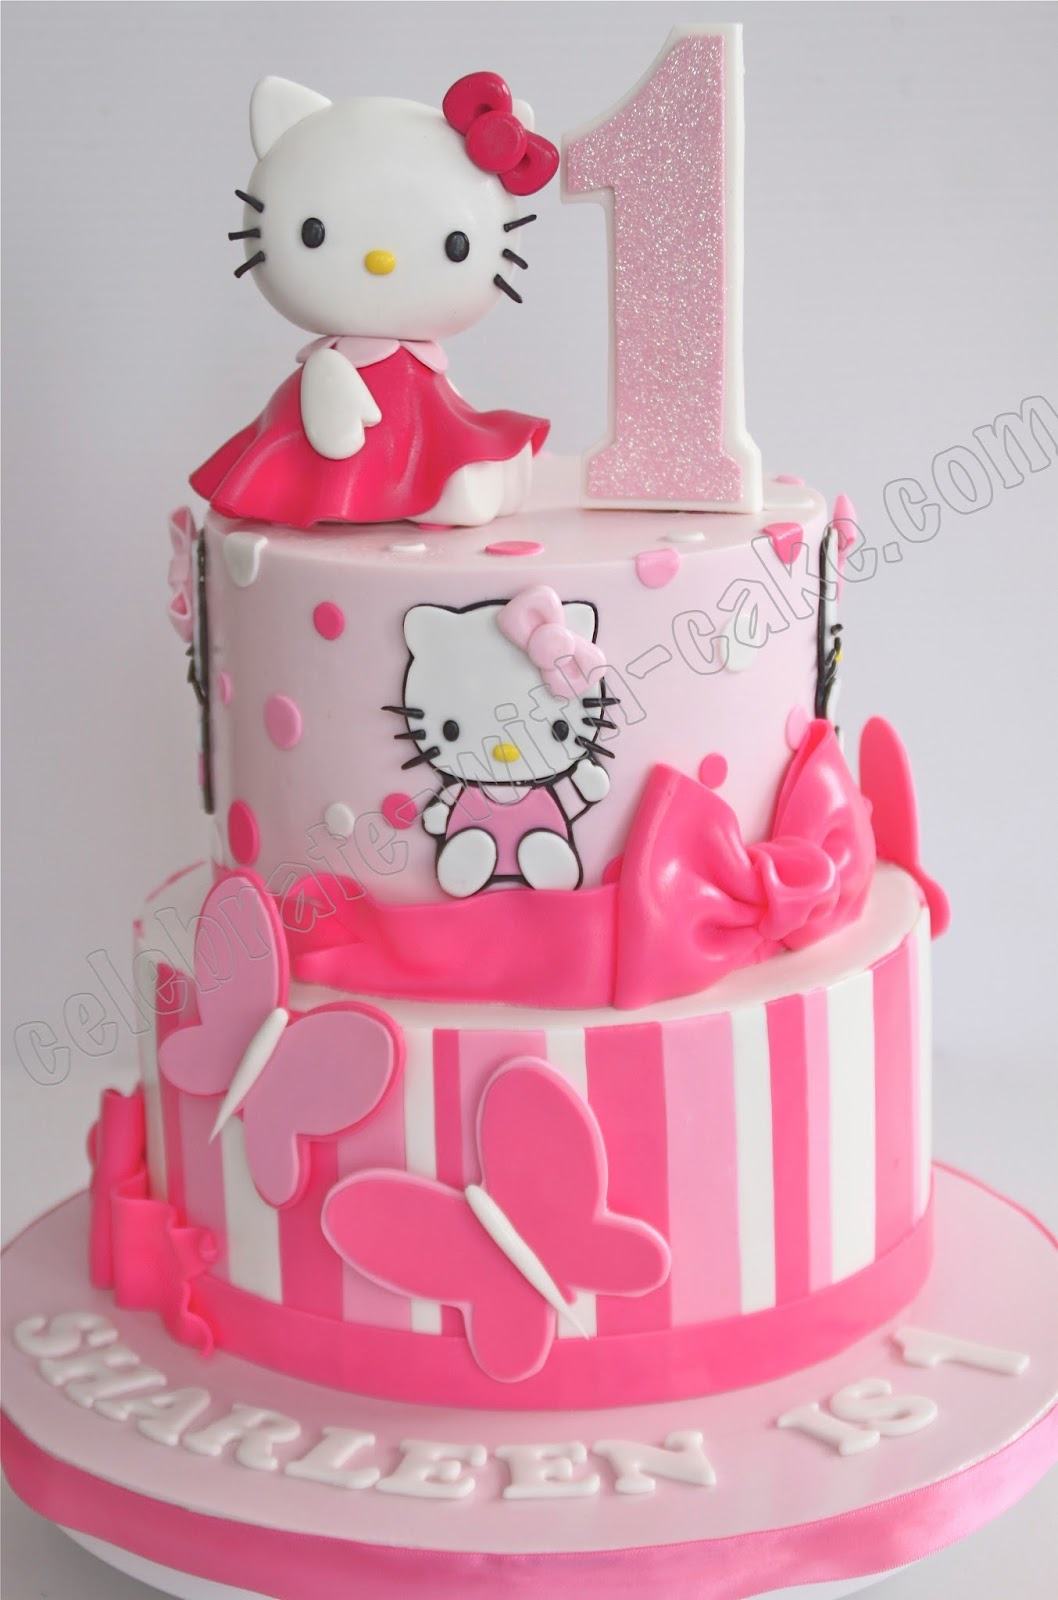 Images Of A Hello Kitty Cake : Celebrate with Cake!: 1st Birthday Hello Kitty Tier Cake